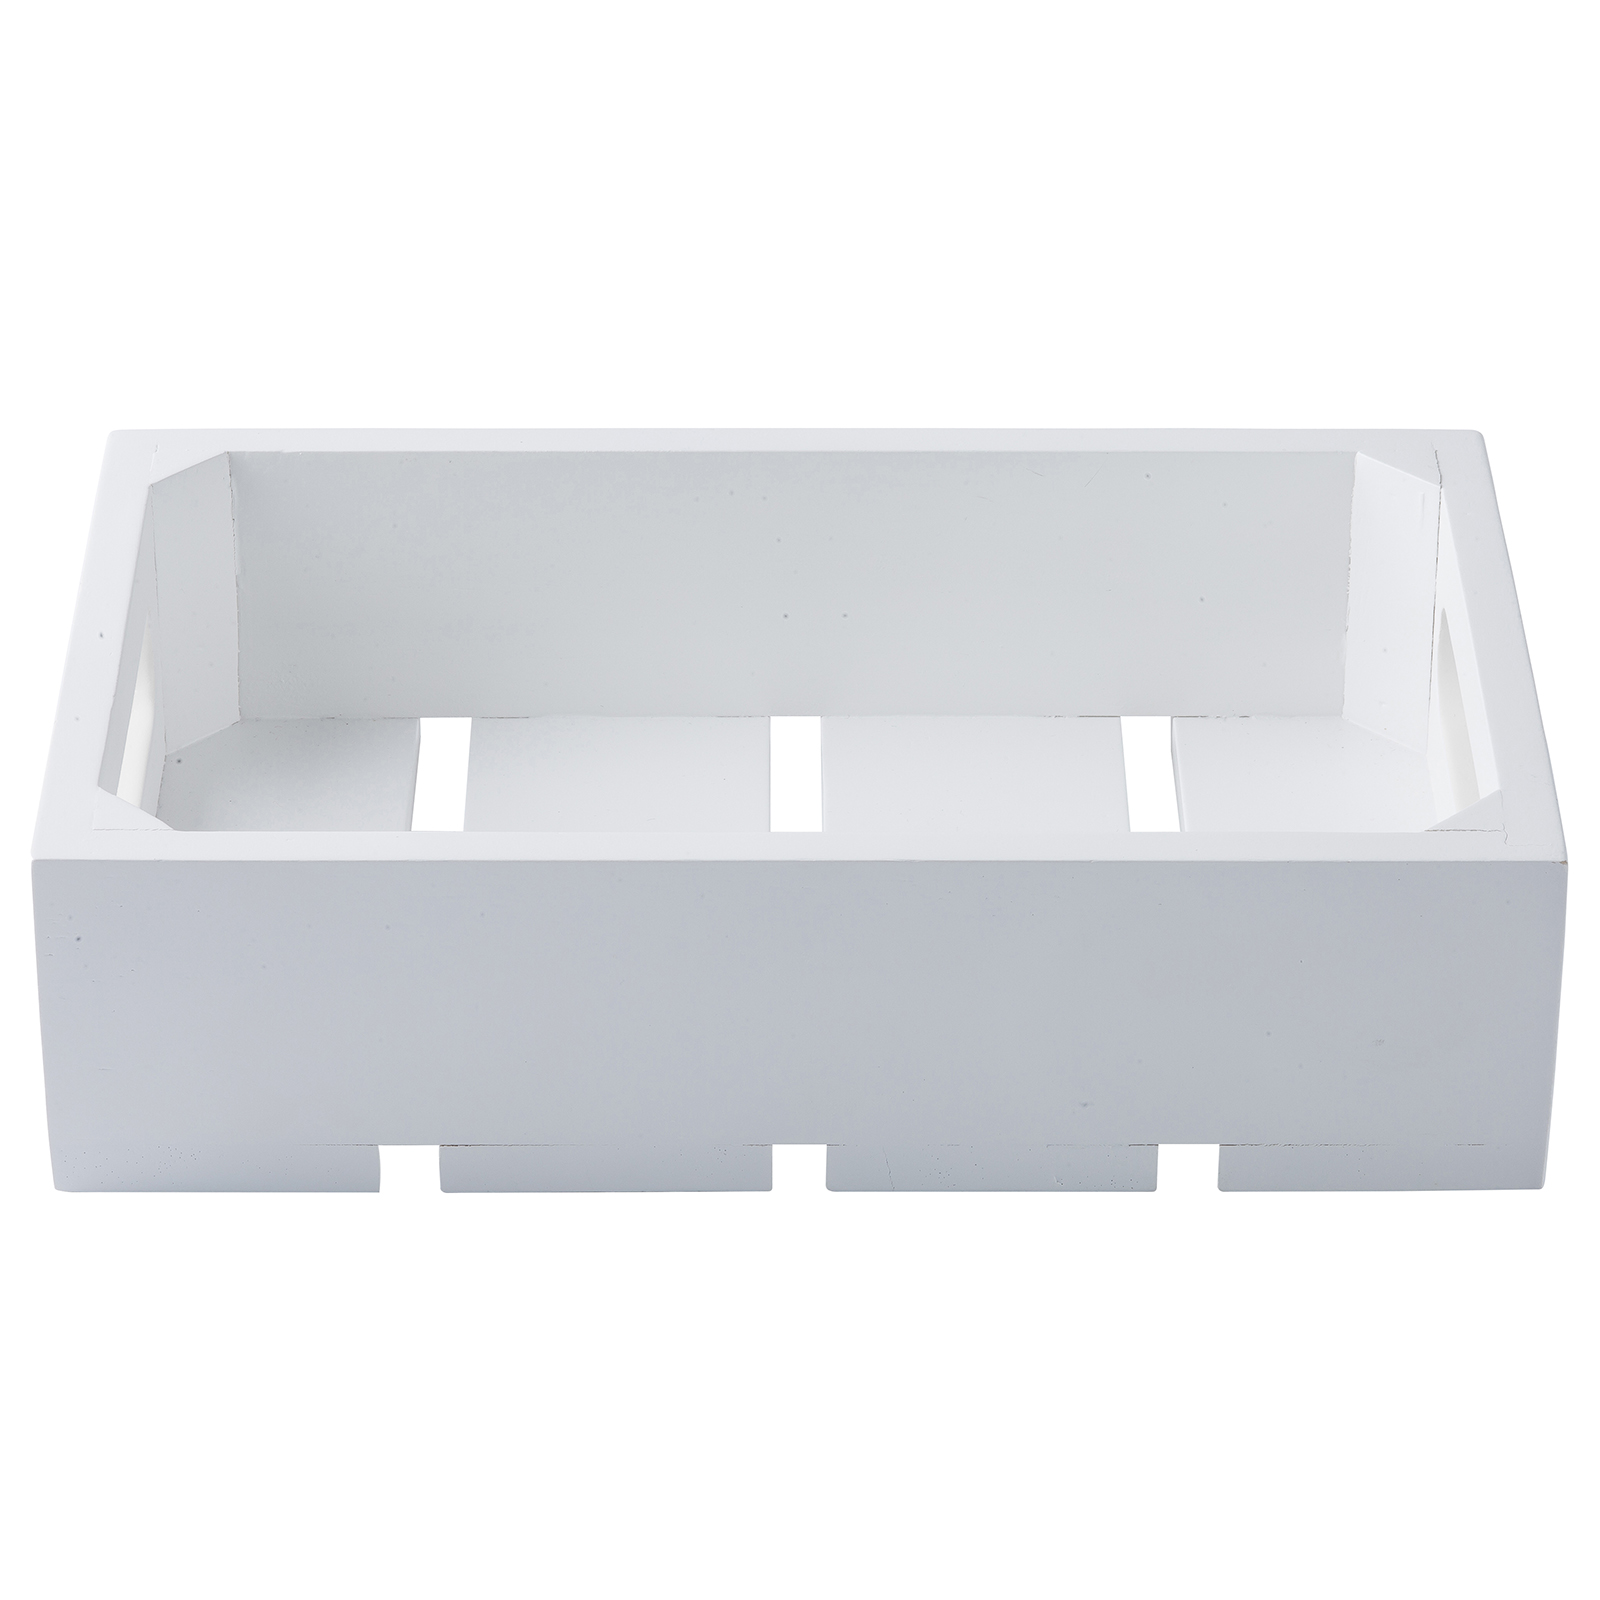 TableCraft Products CRATE14W risers & displays